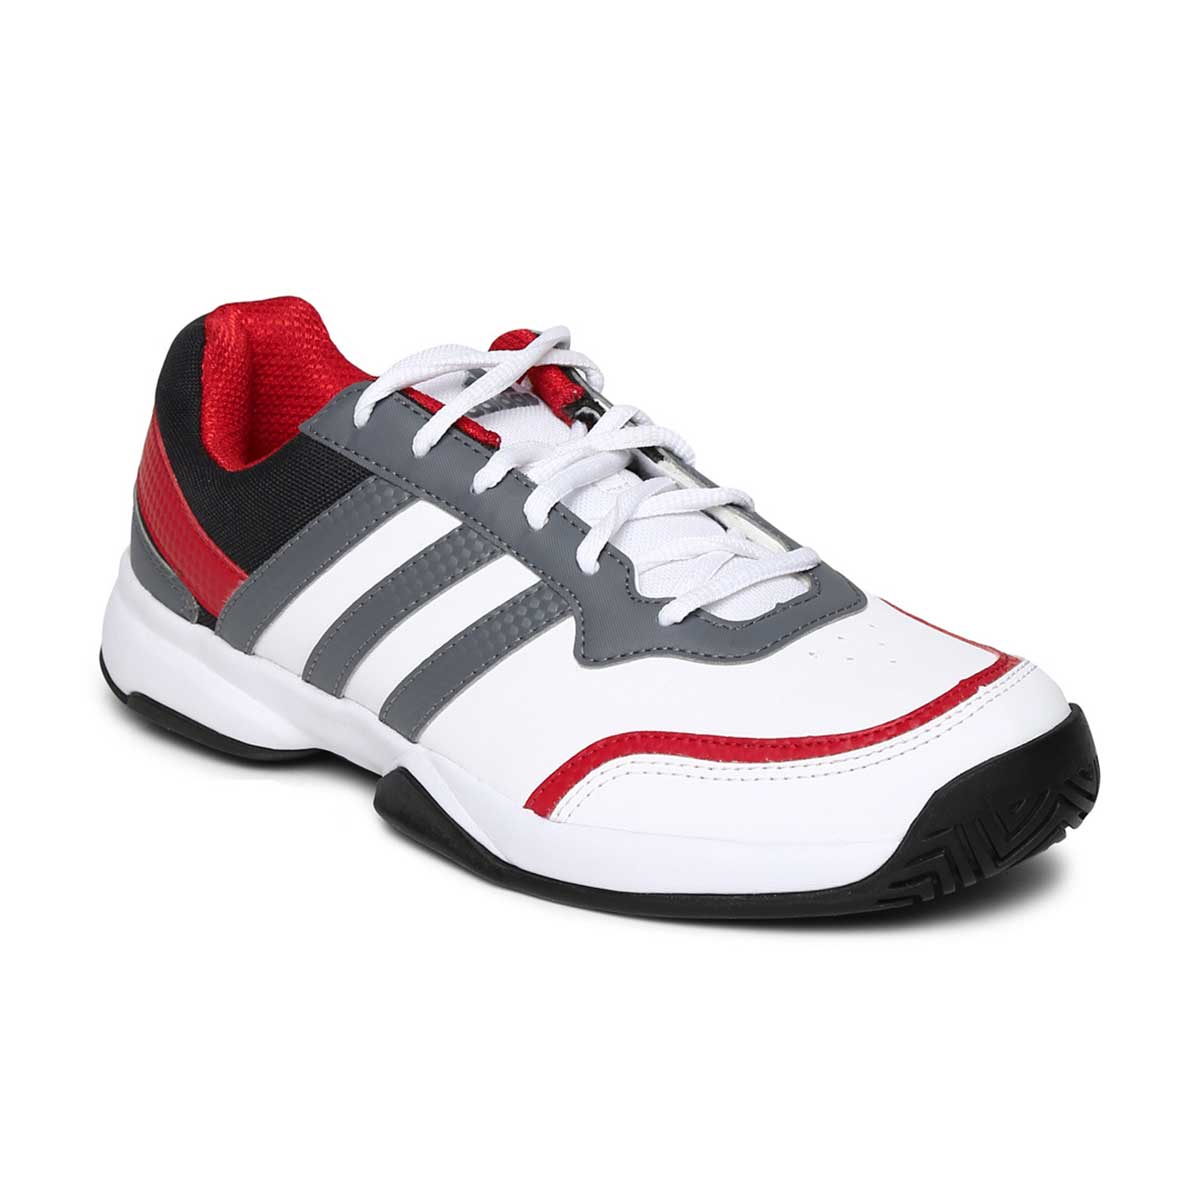 buy adidas tennis shoes online